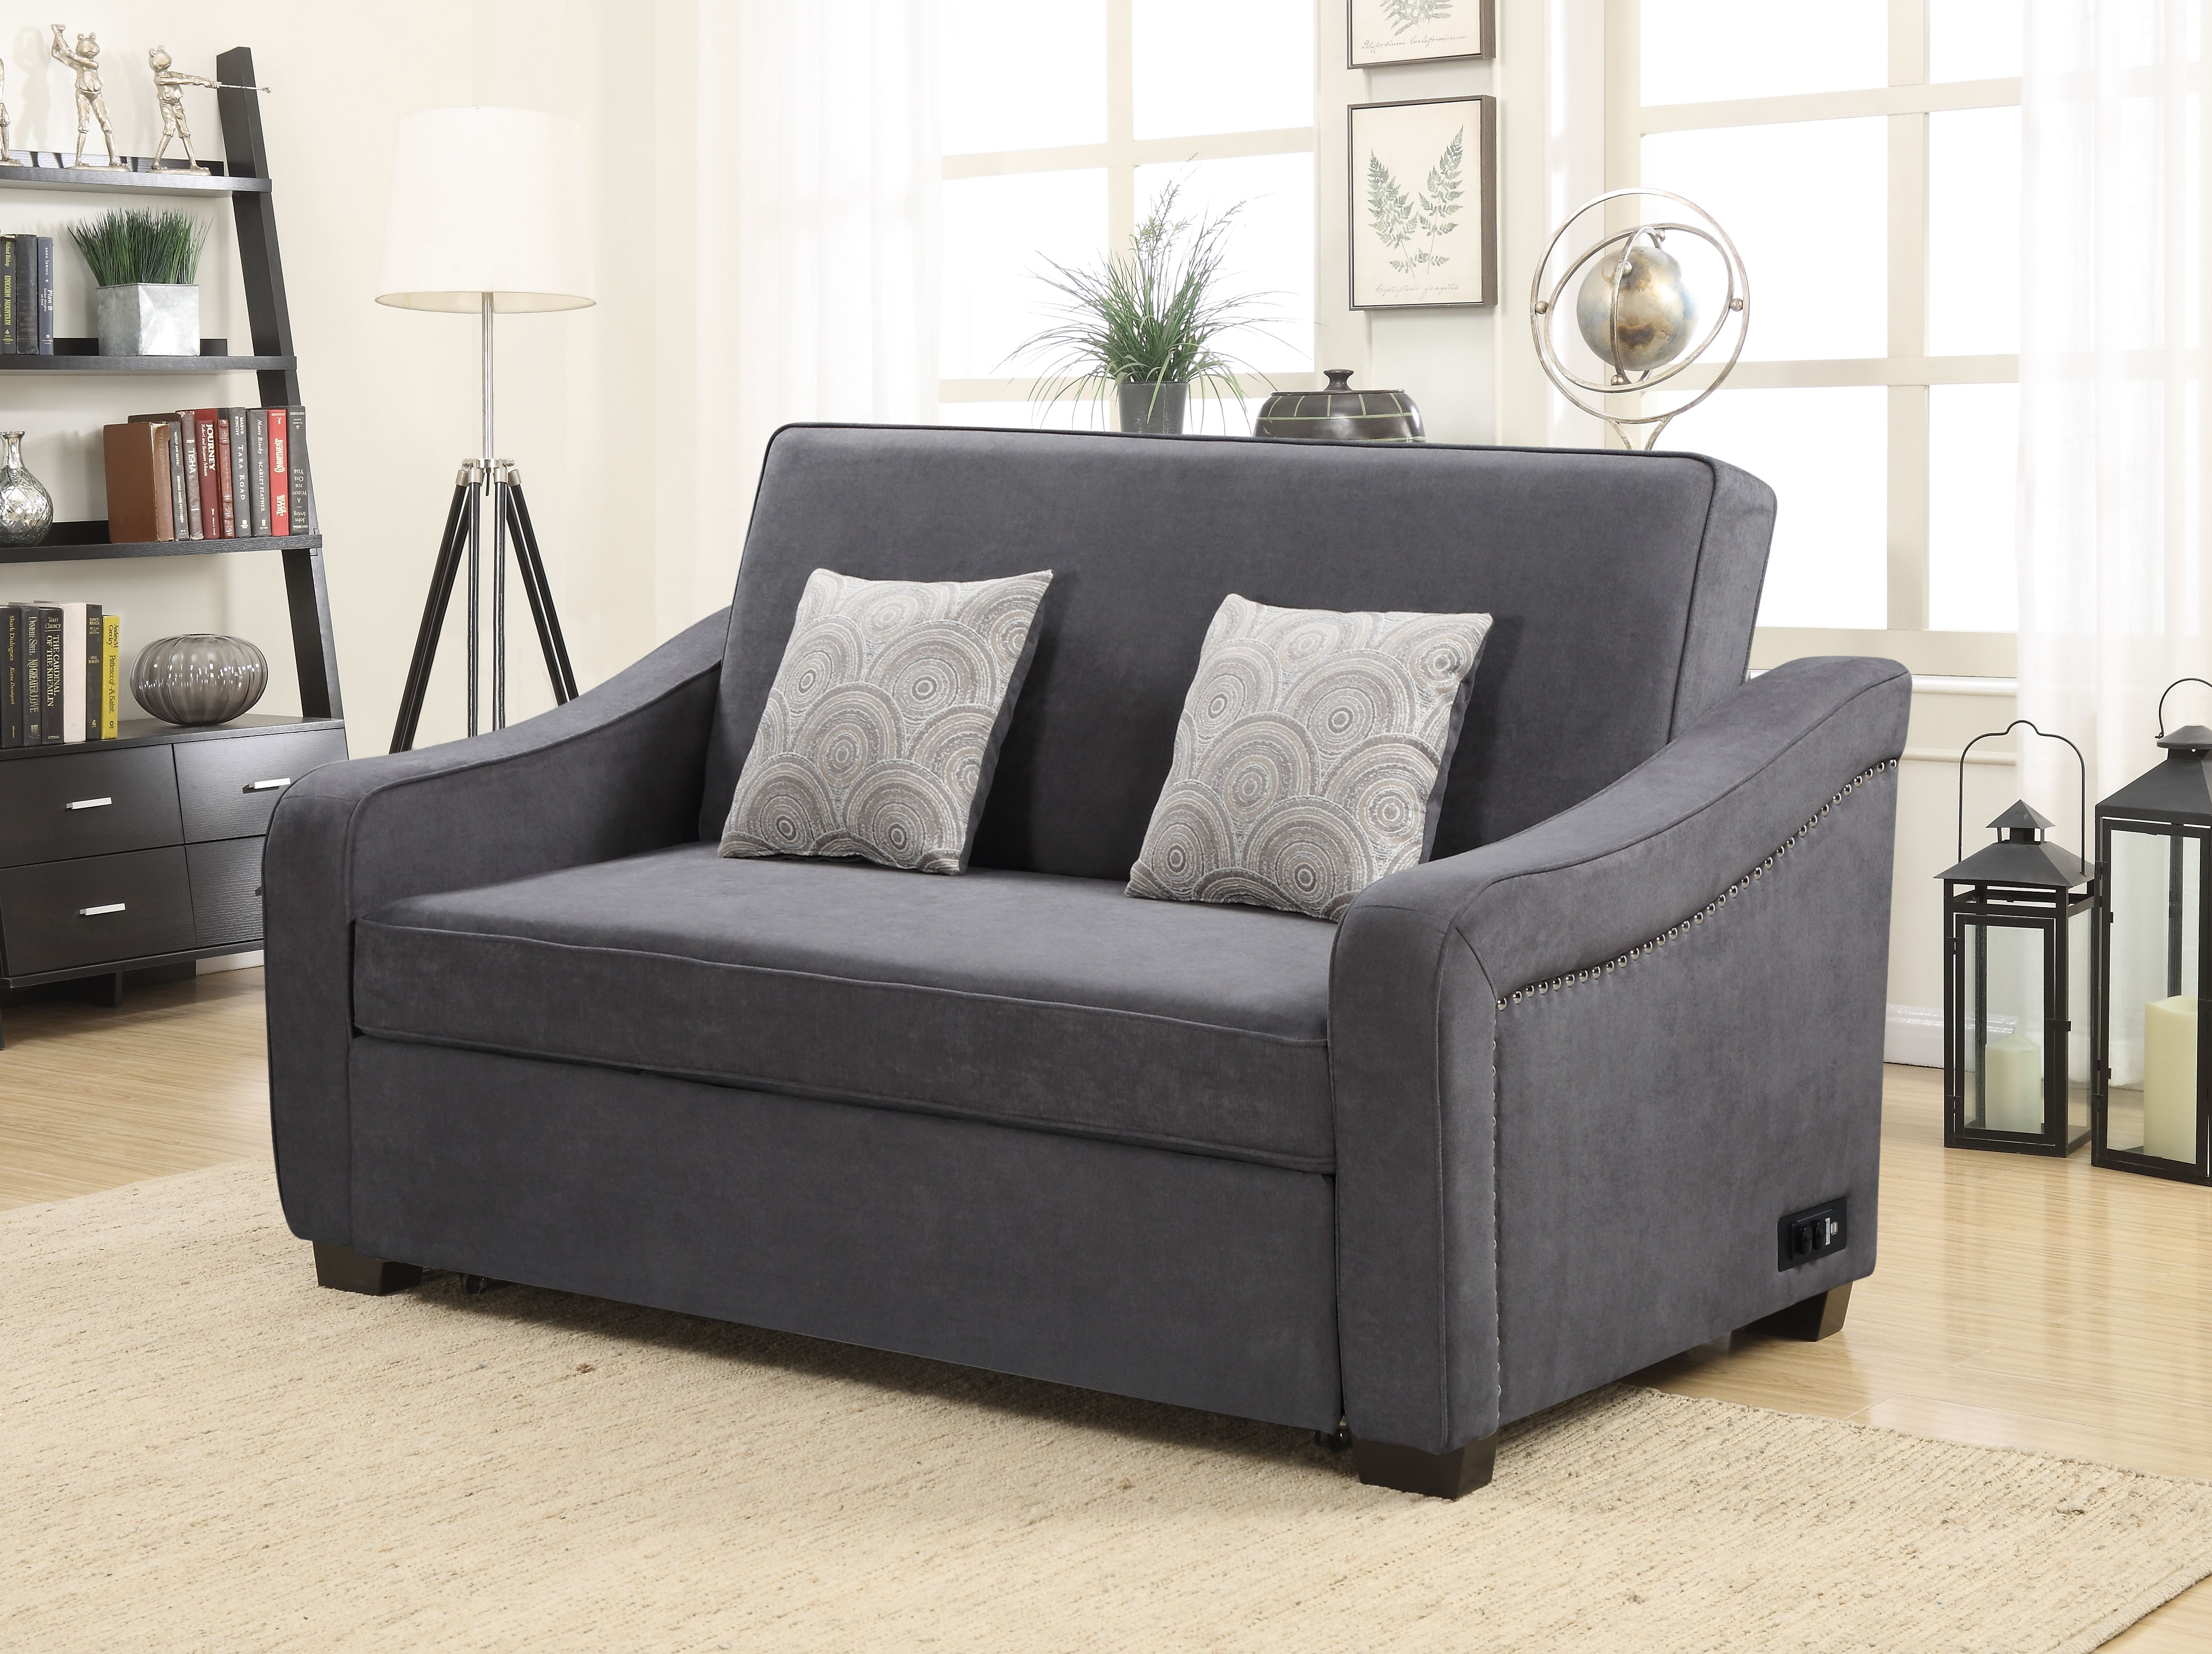 Home Sofa, Sofa bed, Bed sizes